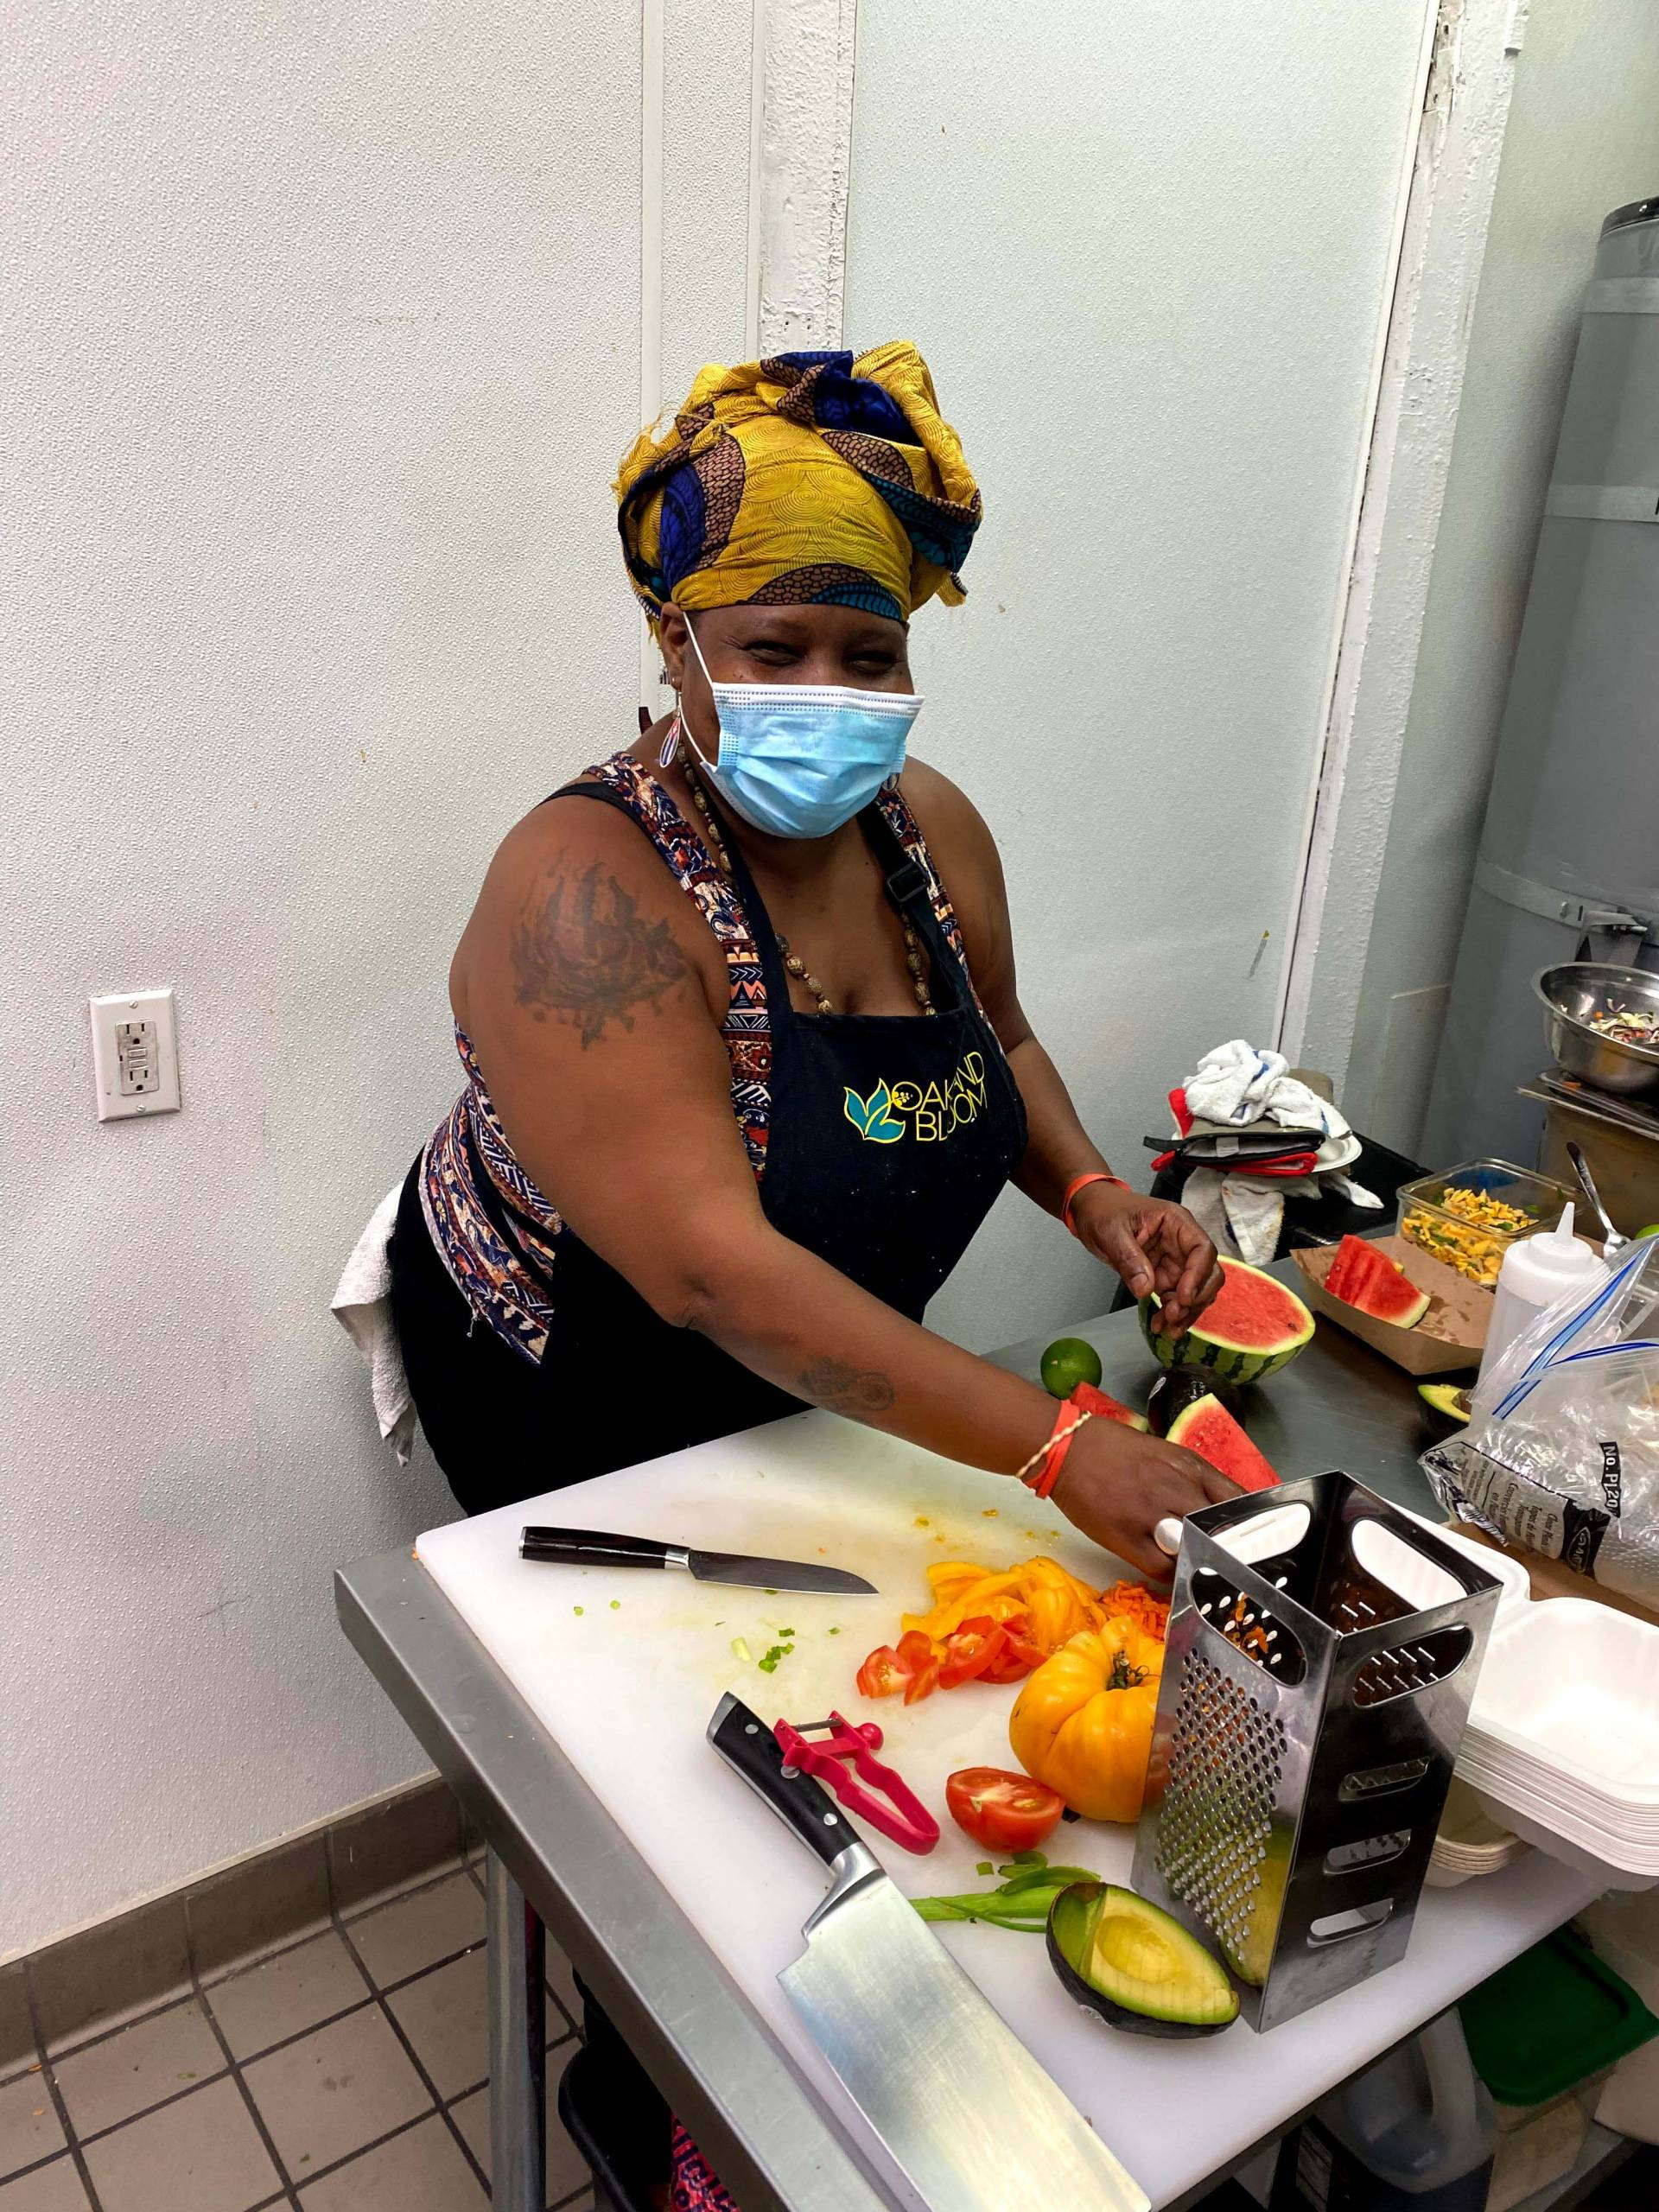 A Black woman wearing a face mask and black apron cuts up orange and red peppers on a small kitchen prep counter.